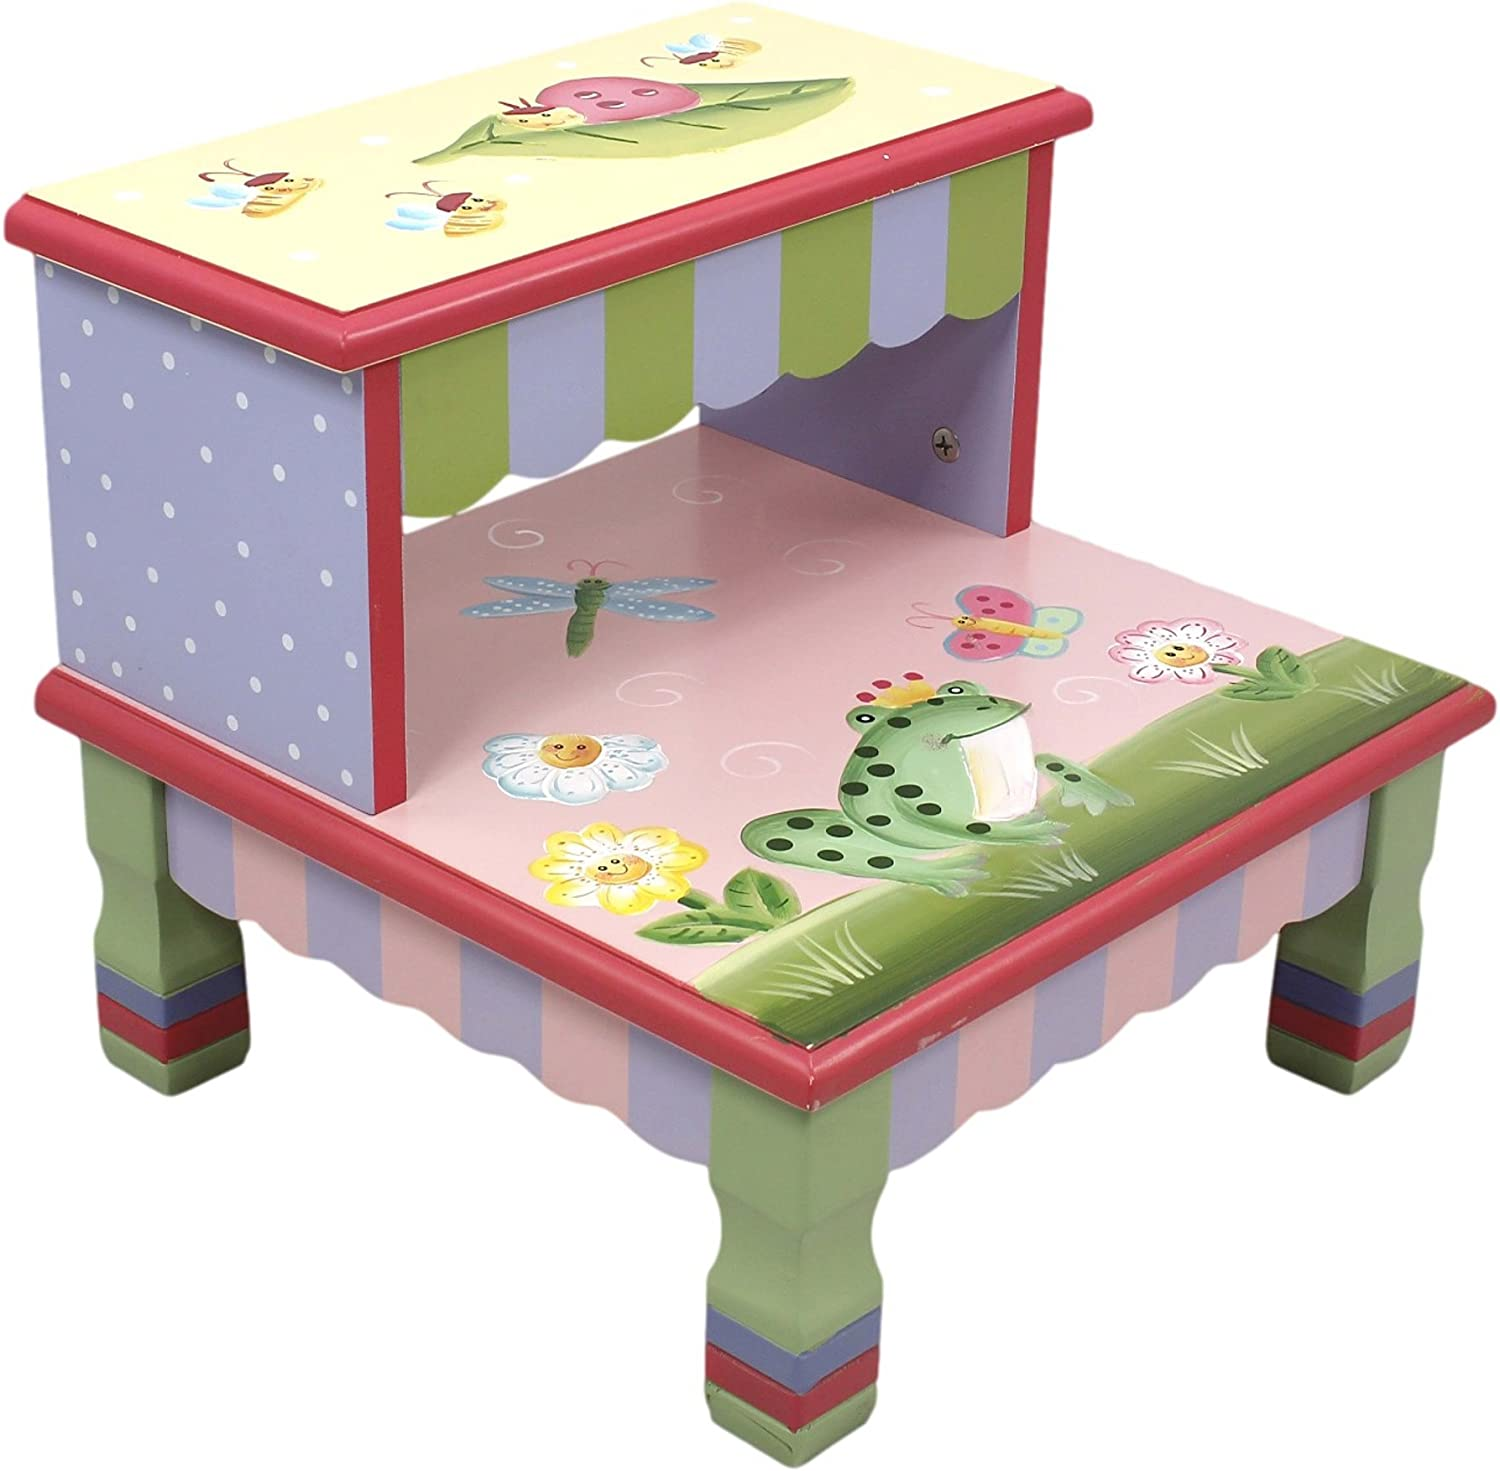 Fantasy Fields - Magic Garden Thematic Kids Wooden Step Stool   Imagination Inspiring Hand Crafted & Hand Painted Details Non-Toxic, Lead Free Water-Based Paint